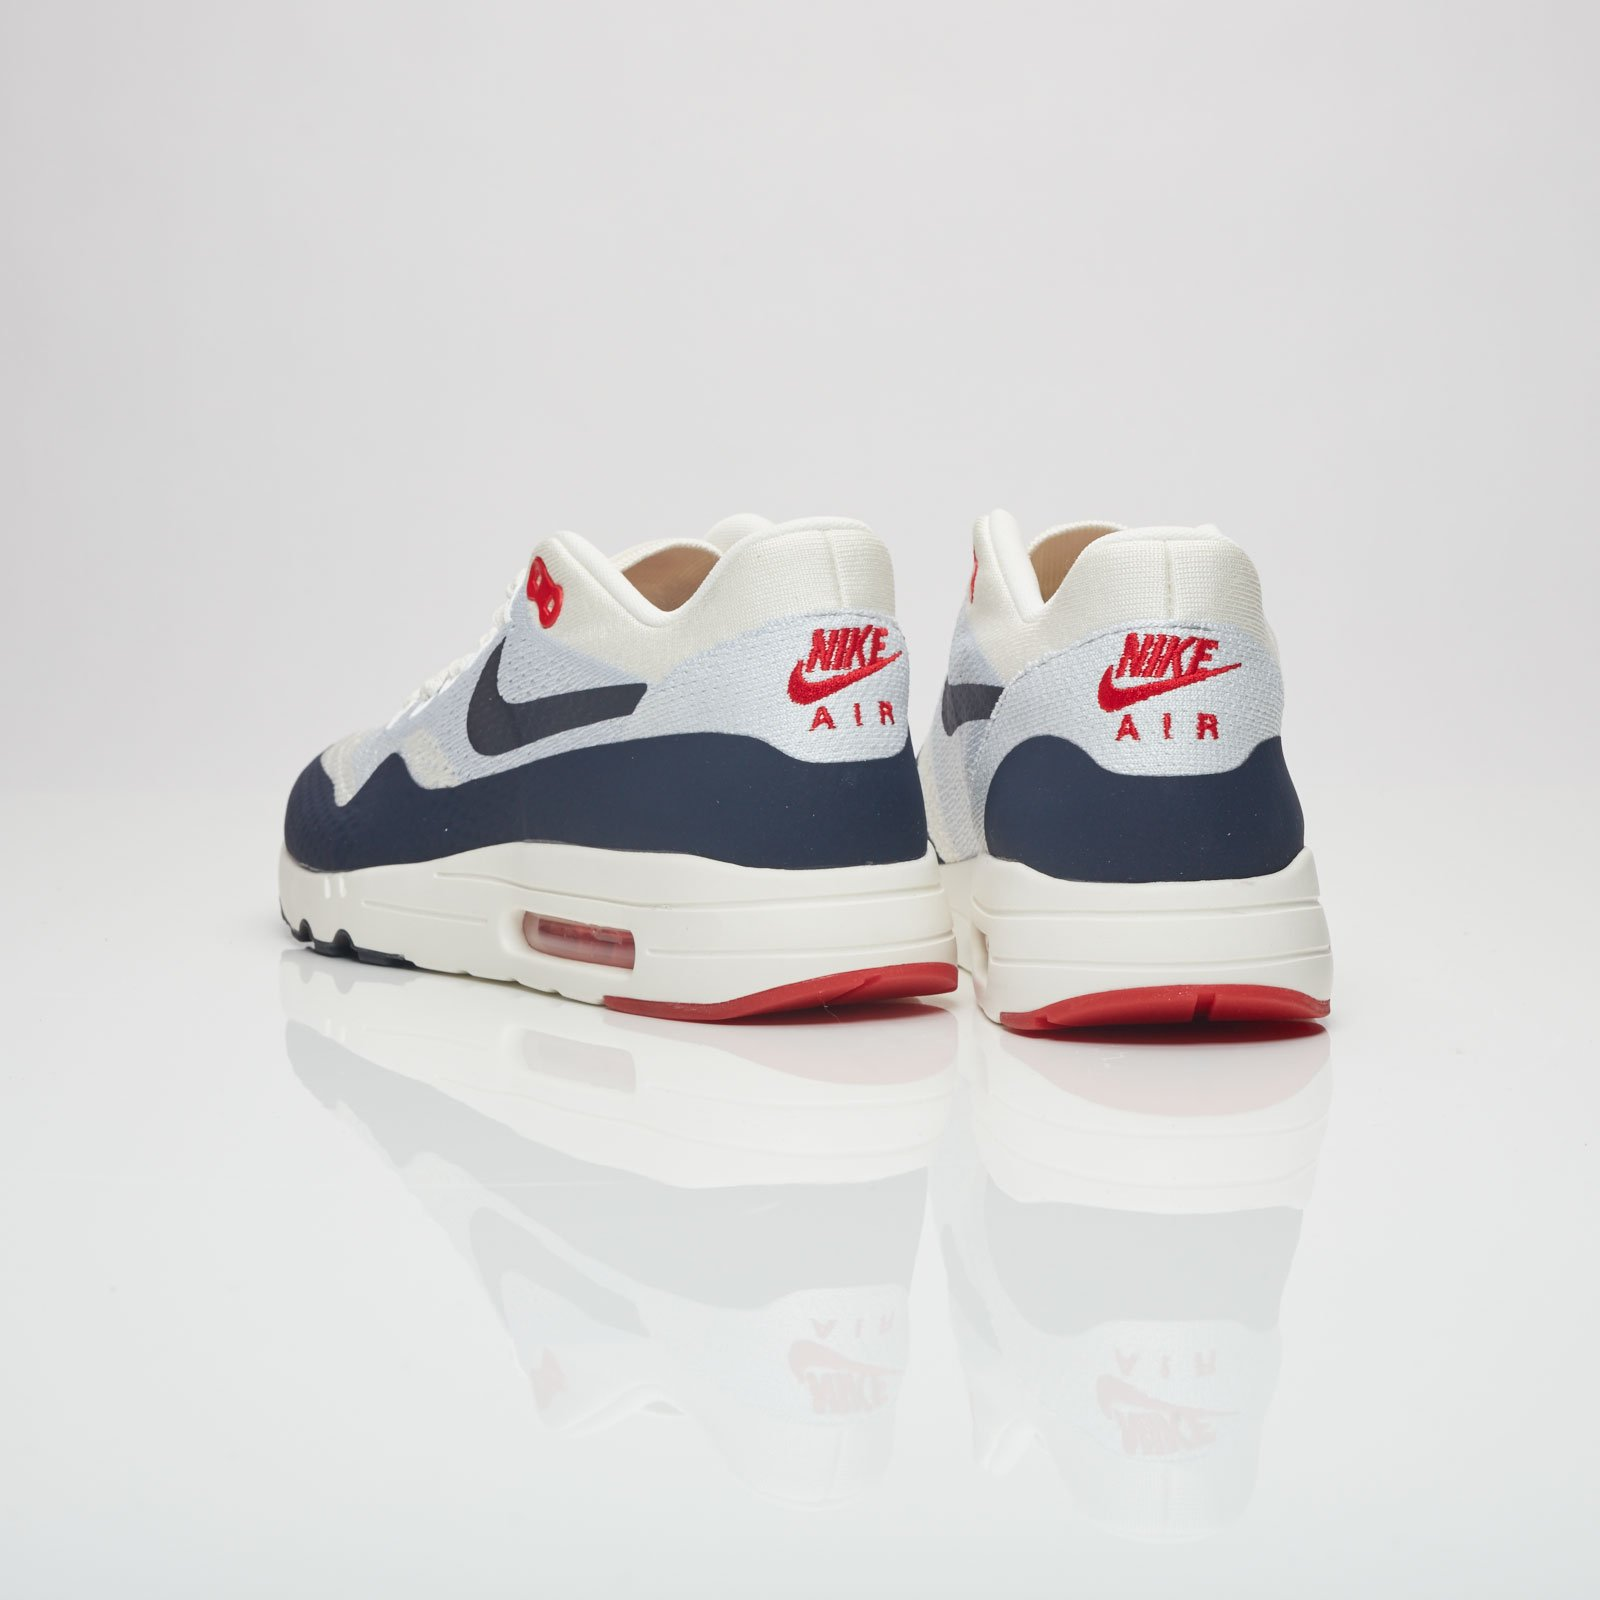 Nike Air Max 1 Ultra 2.0 Flyknit - 875942-100 - SNS | sneakers ...